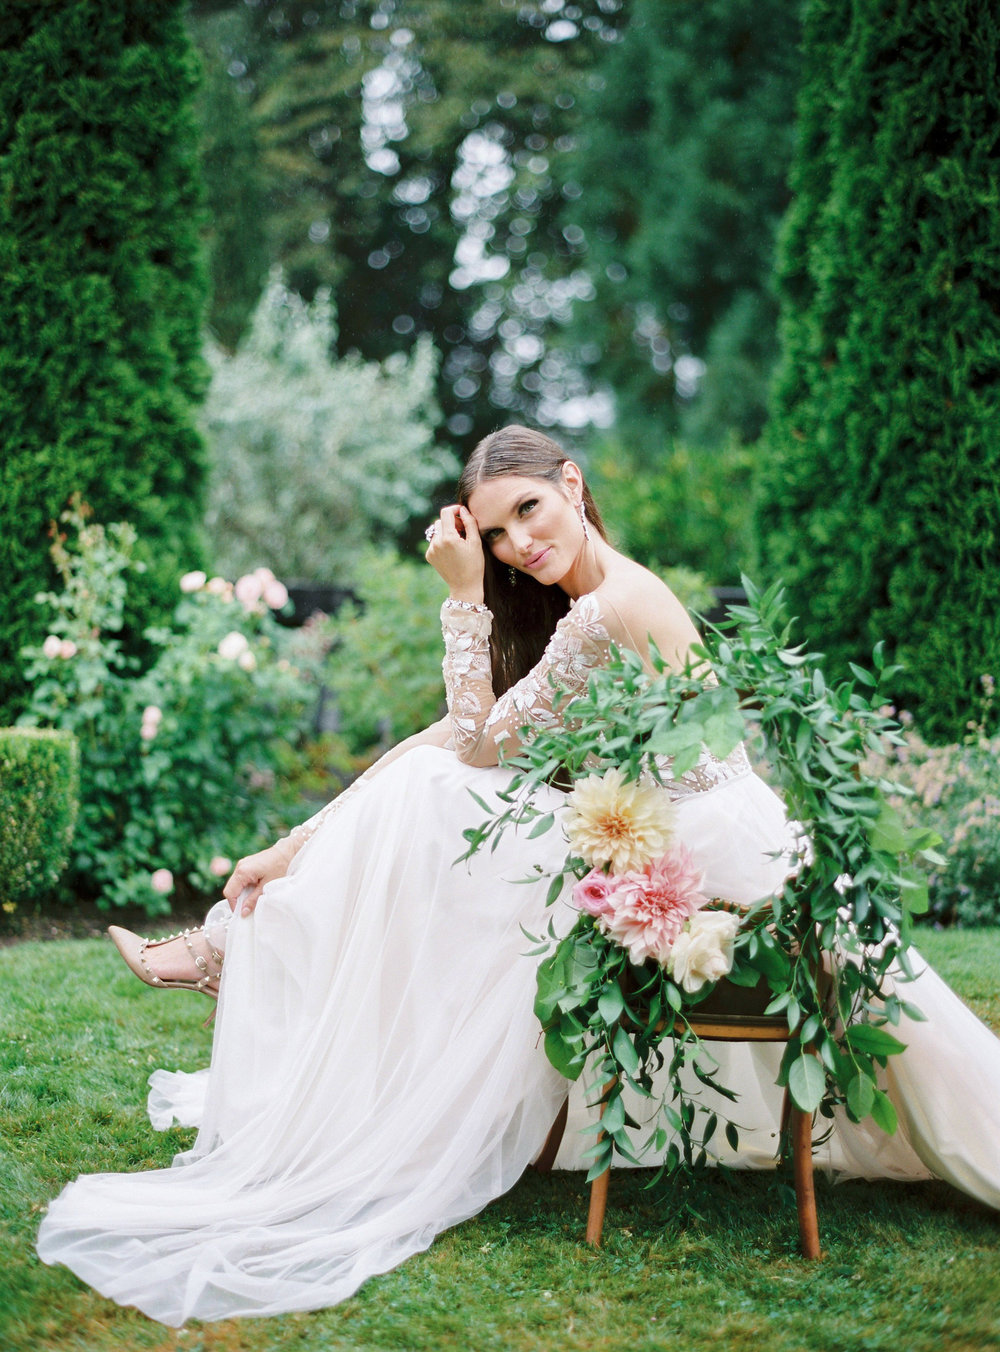 The Bridal Boutique • Blush Wedding Photography • Hayley Paige